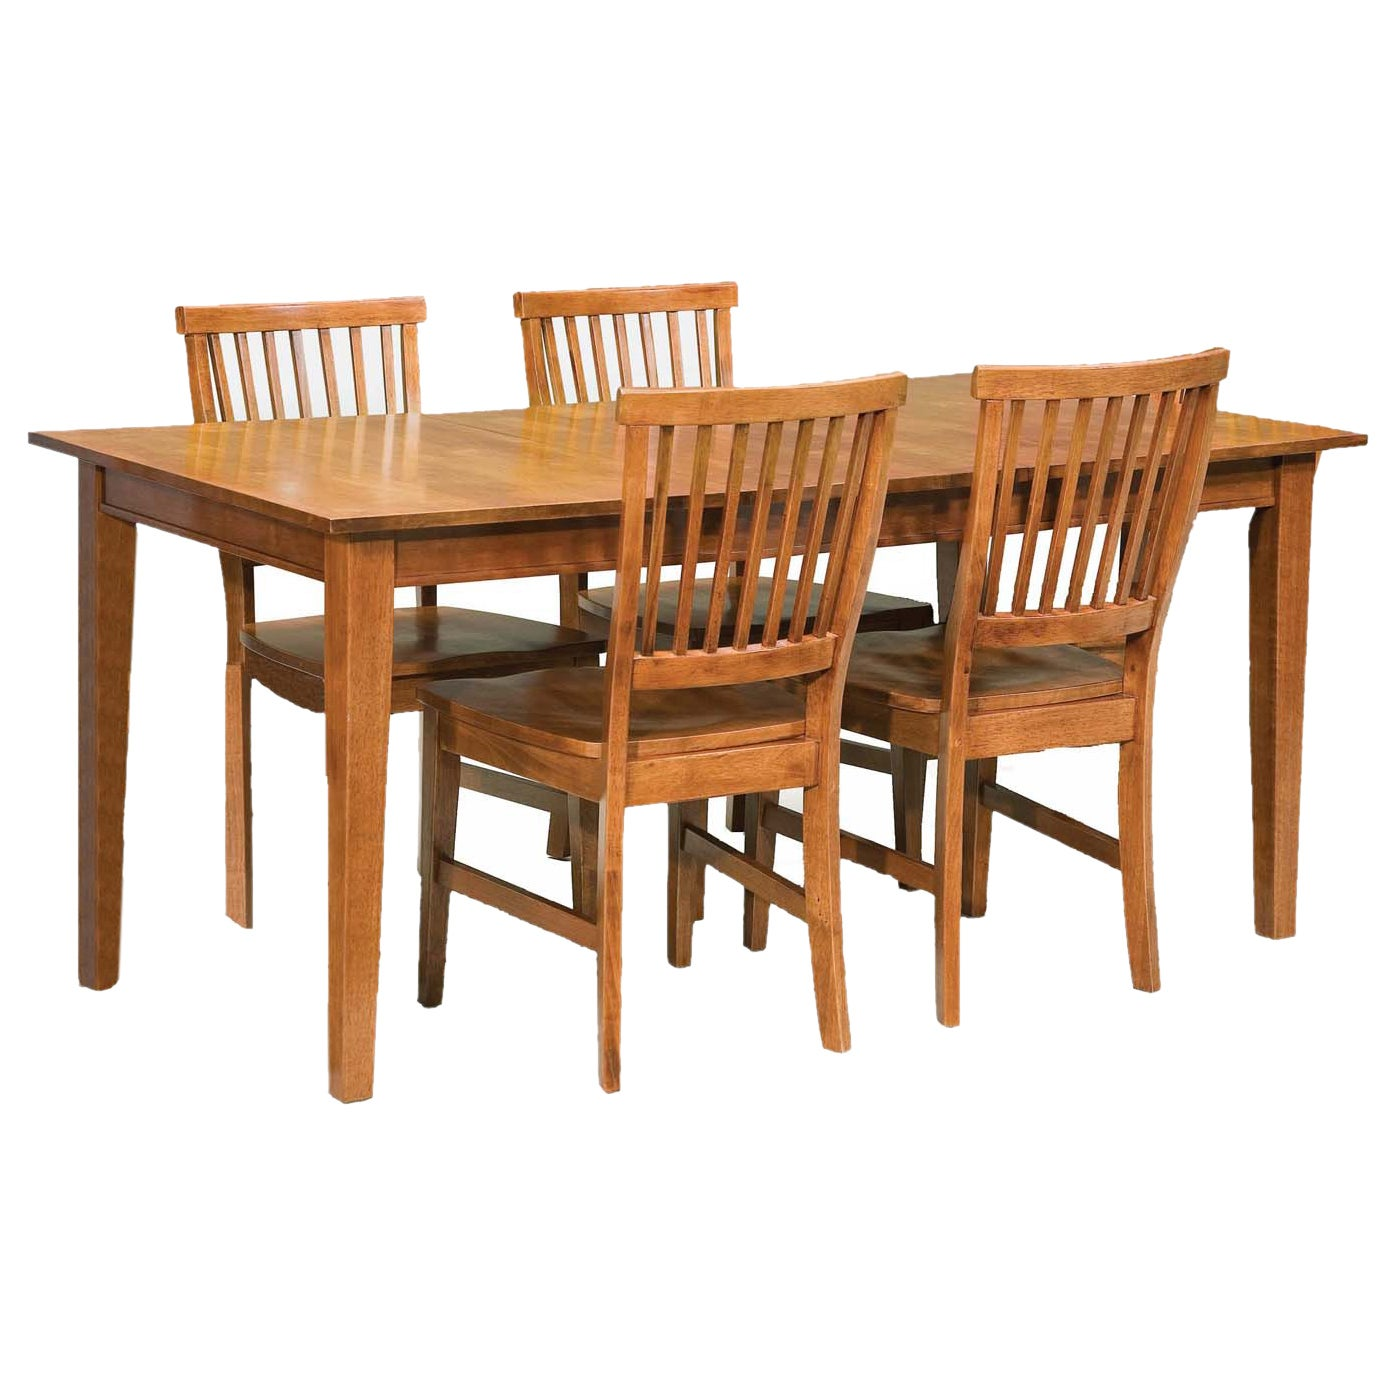 Arts and Crafts Cottage Oak 5-piece Dining Furniture Set by Home Styles